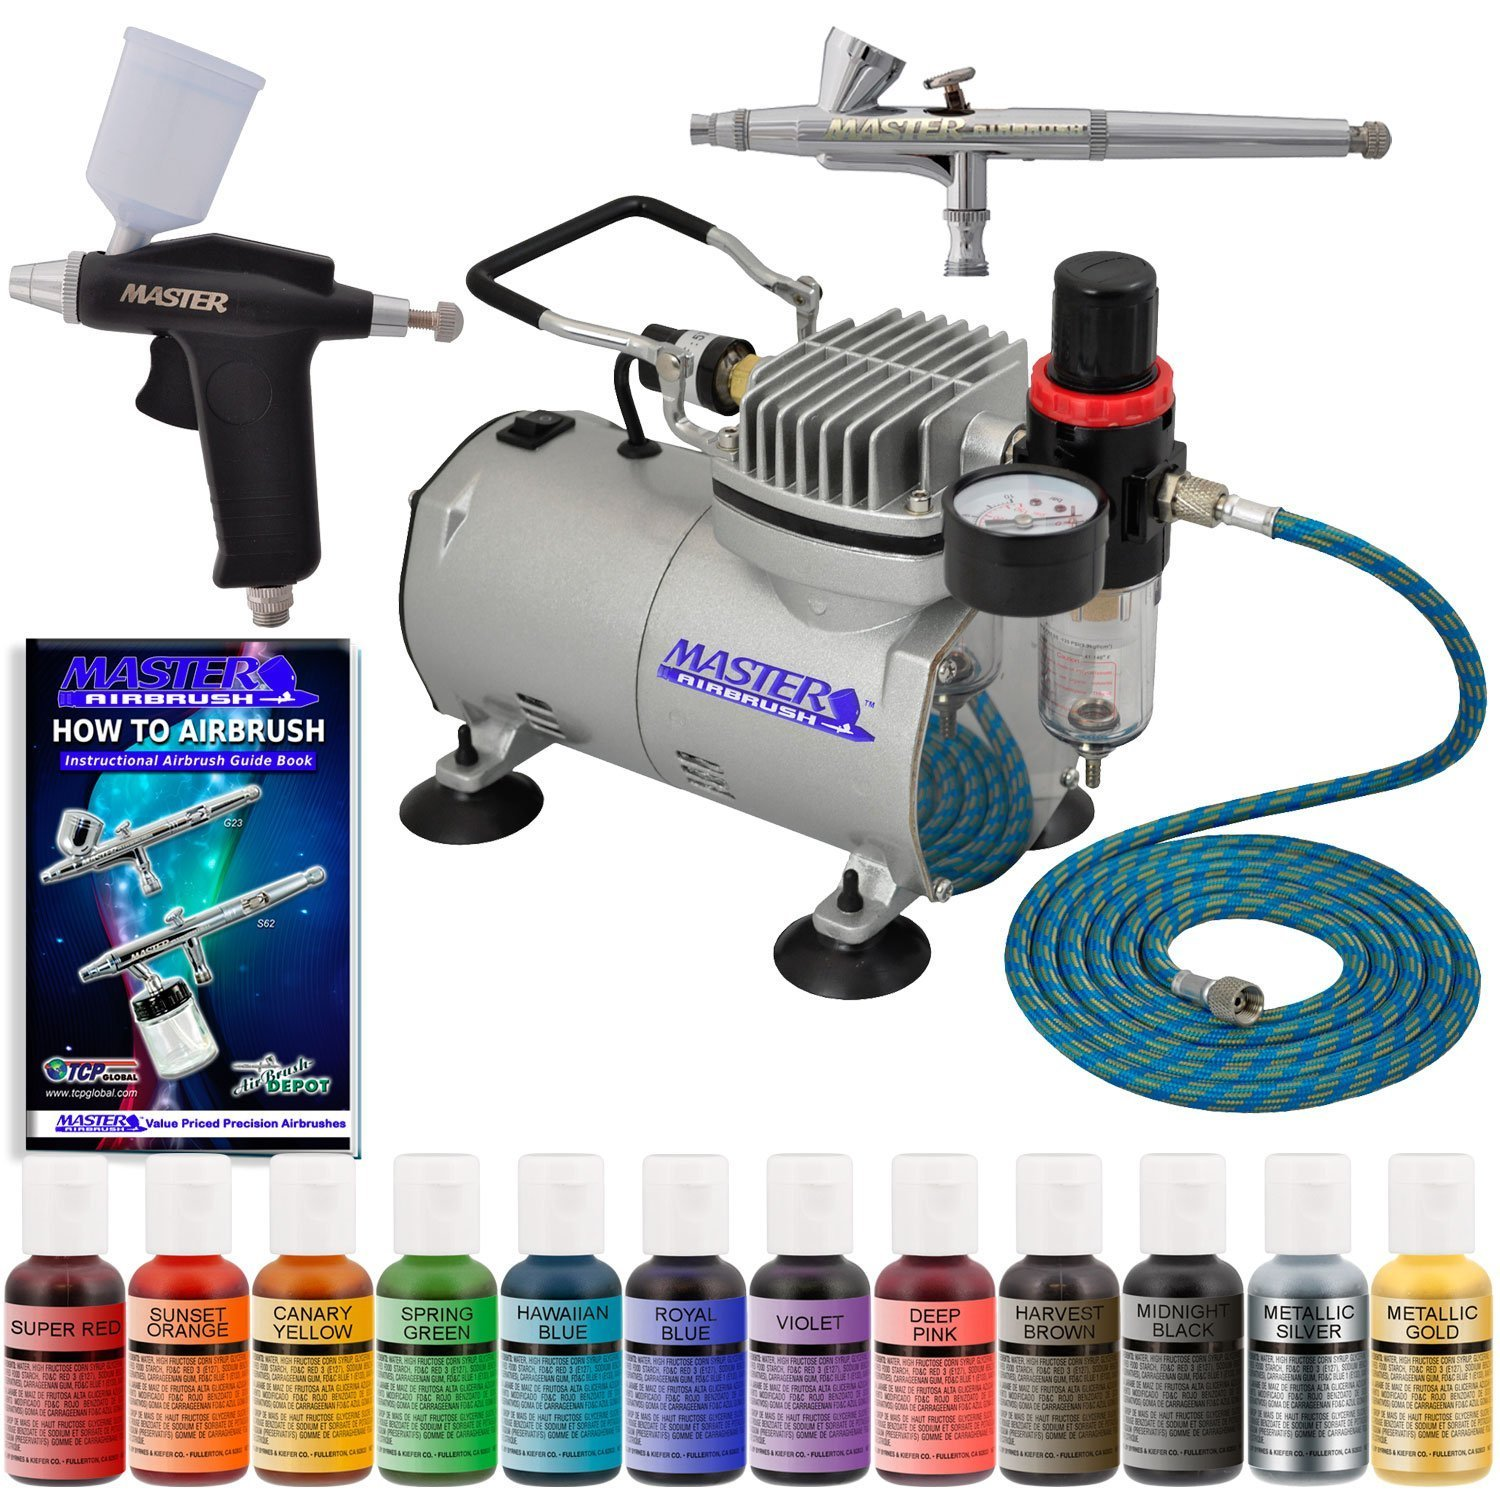 Master Airbrush Twin(2) Airbrush Cake Decorating Airbrush Kit with a 12 Color U.S.Cake Supply .5 Oz Food Color Set, Airbrush Depot 1 Year Warranty Air Compressor and 6 Foot Air Hose and Now Includes a (FREE) How to Airbrush Training Book to Get You Started